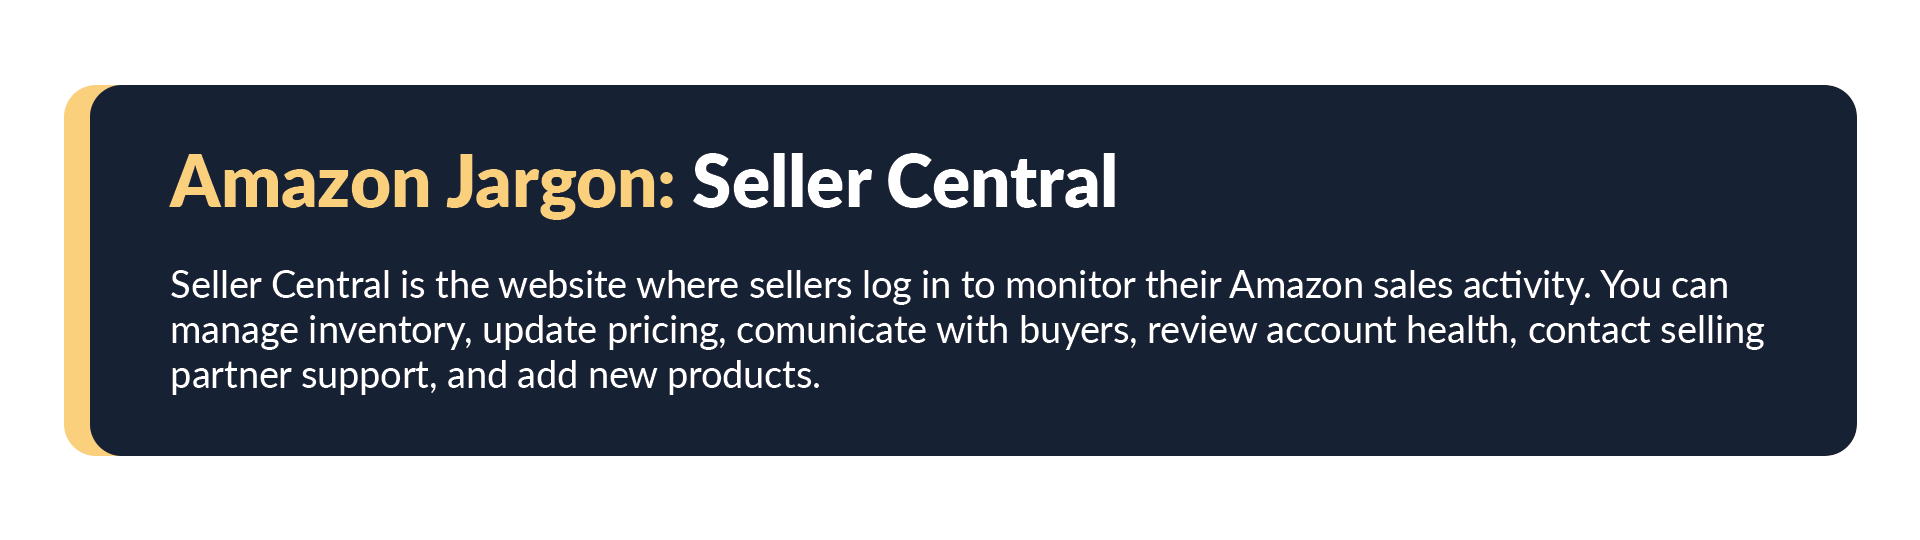 """Amazon's definition for seller central as per their website. """"Seller central is the website where sellers log in to monitor their Amazon sales activity.You can manage inventory, update pricing, communicate with buyers, review account health, contact selling partner support, and add new products""""."""